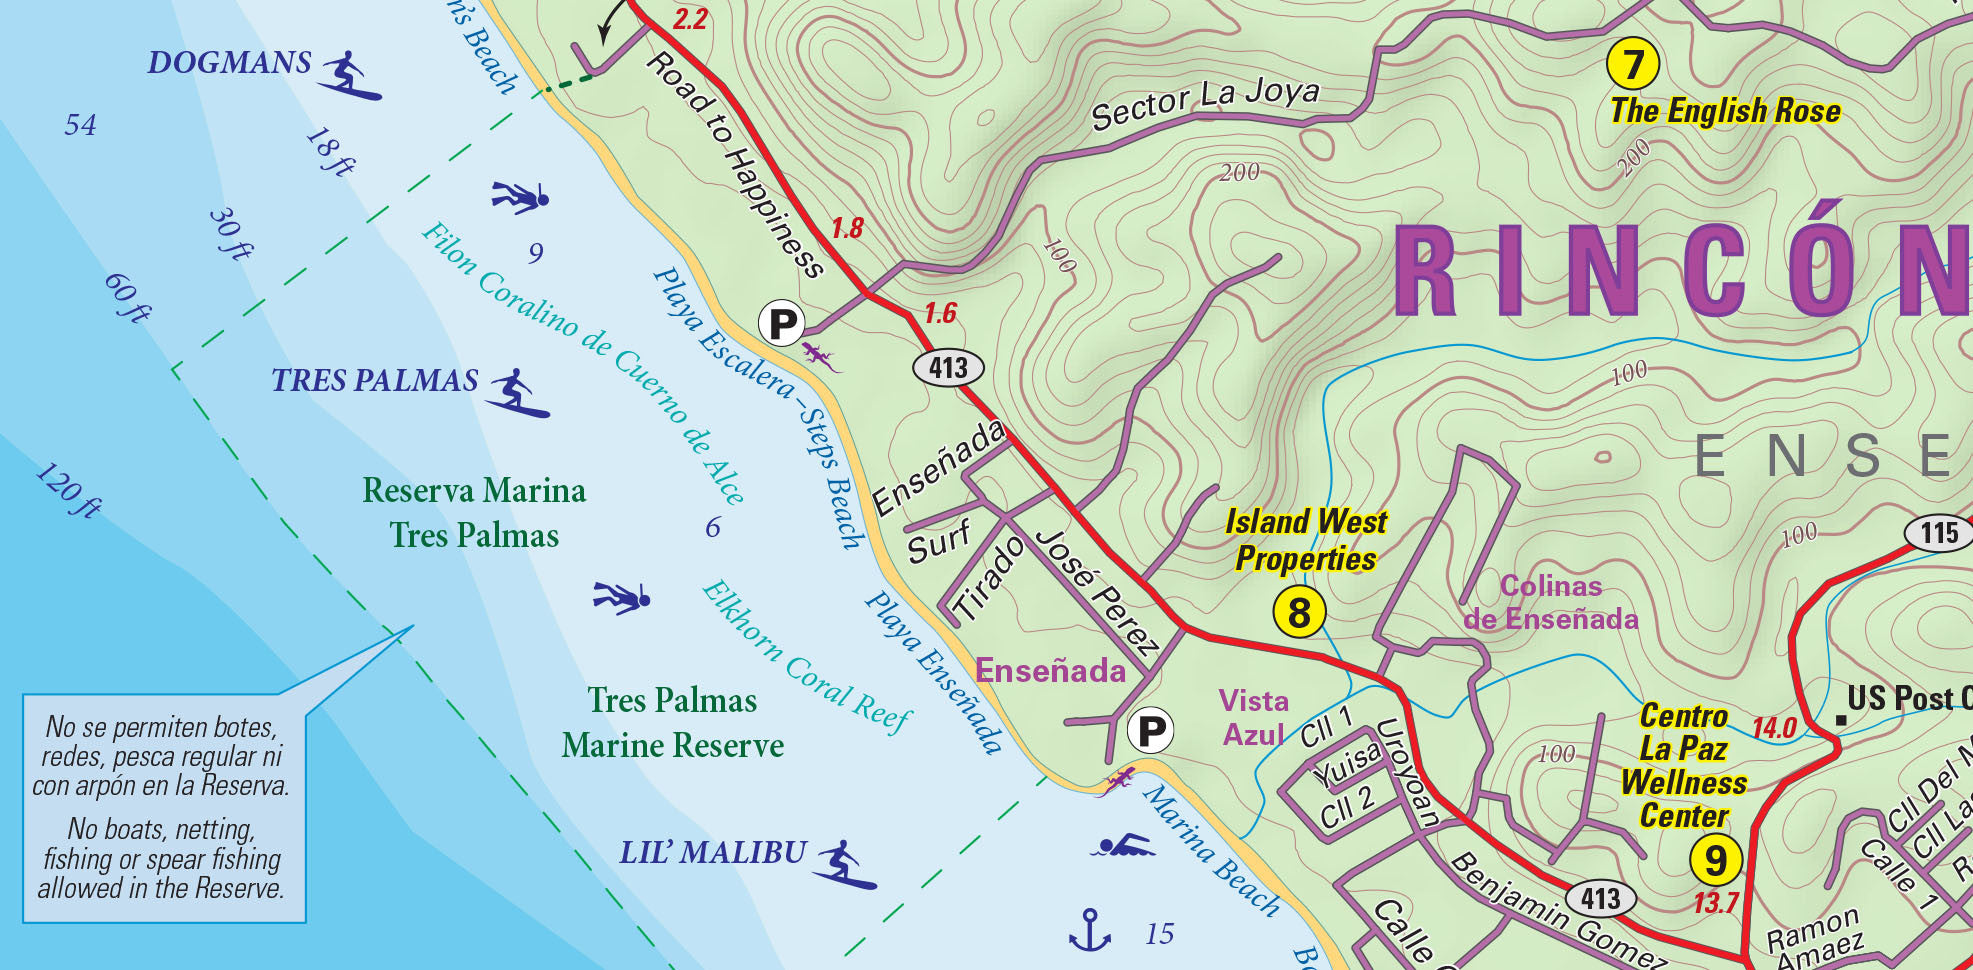 Rincon Puerto Rico Lizard Map: Surf Break, Beach & Vacation Guide ...